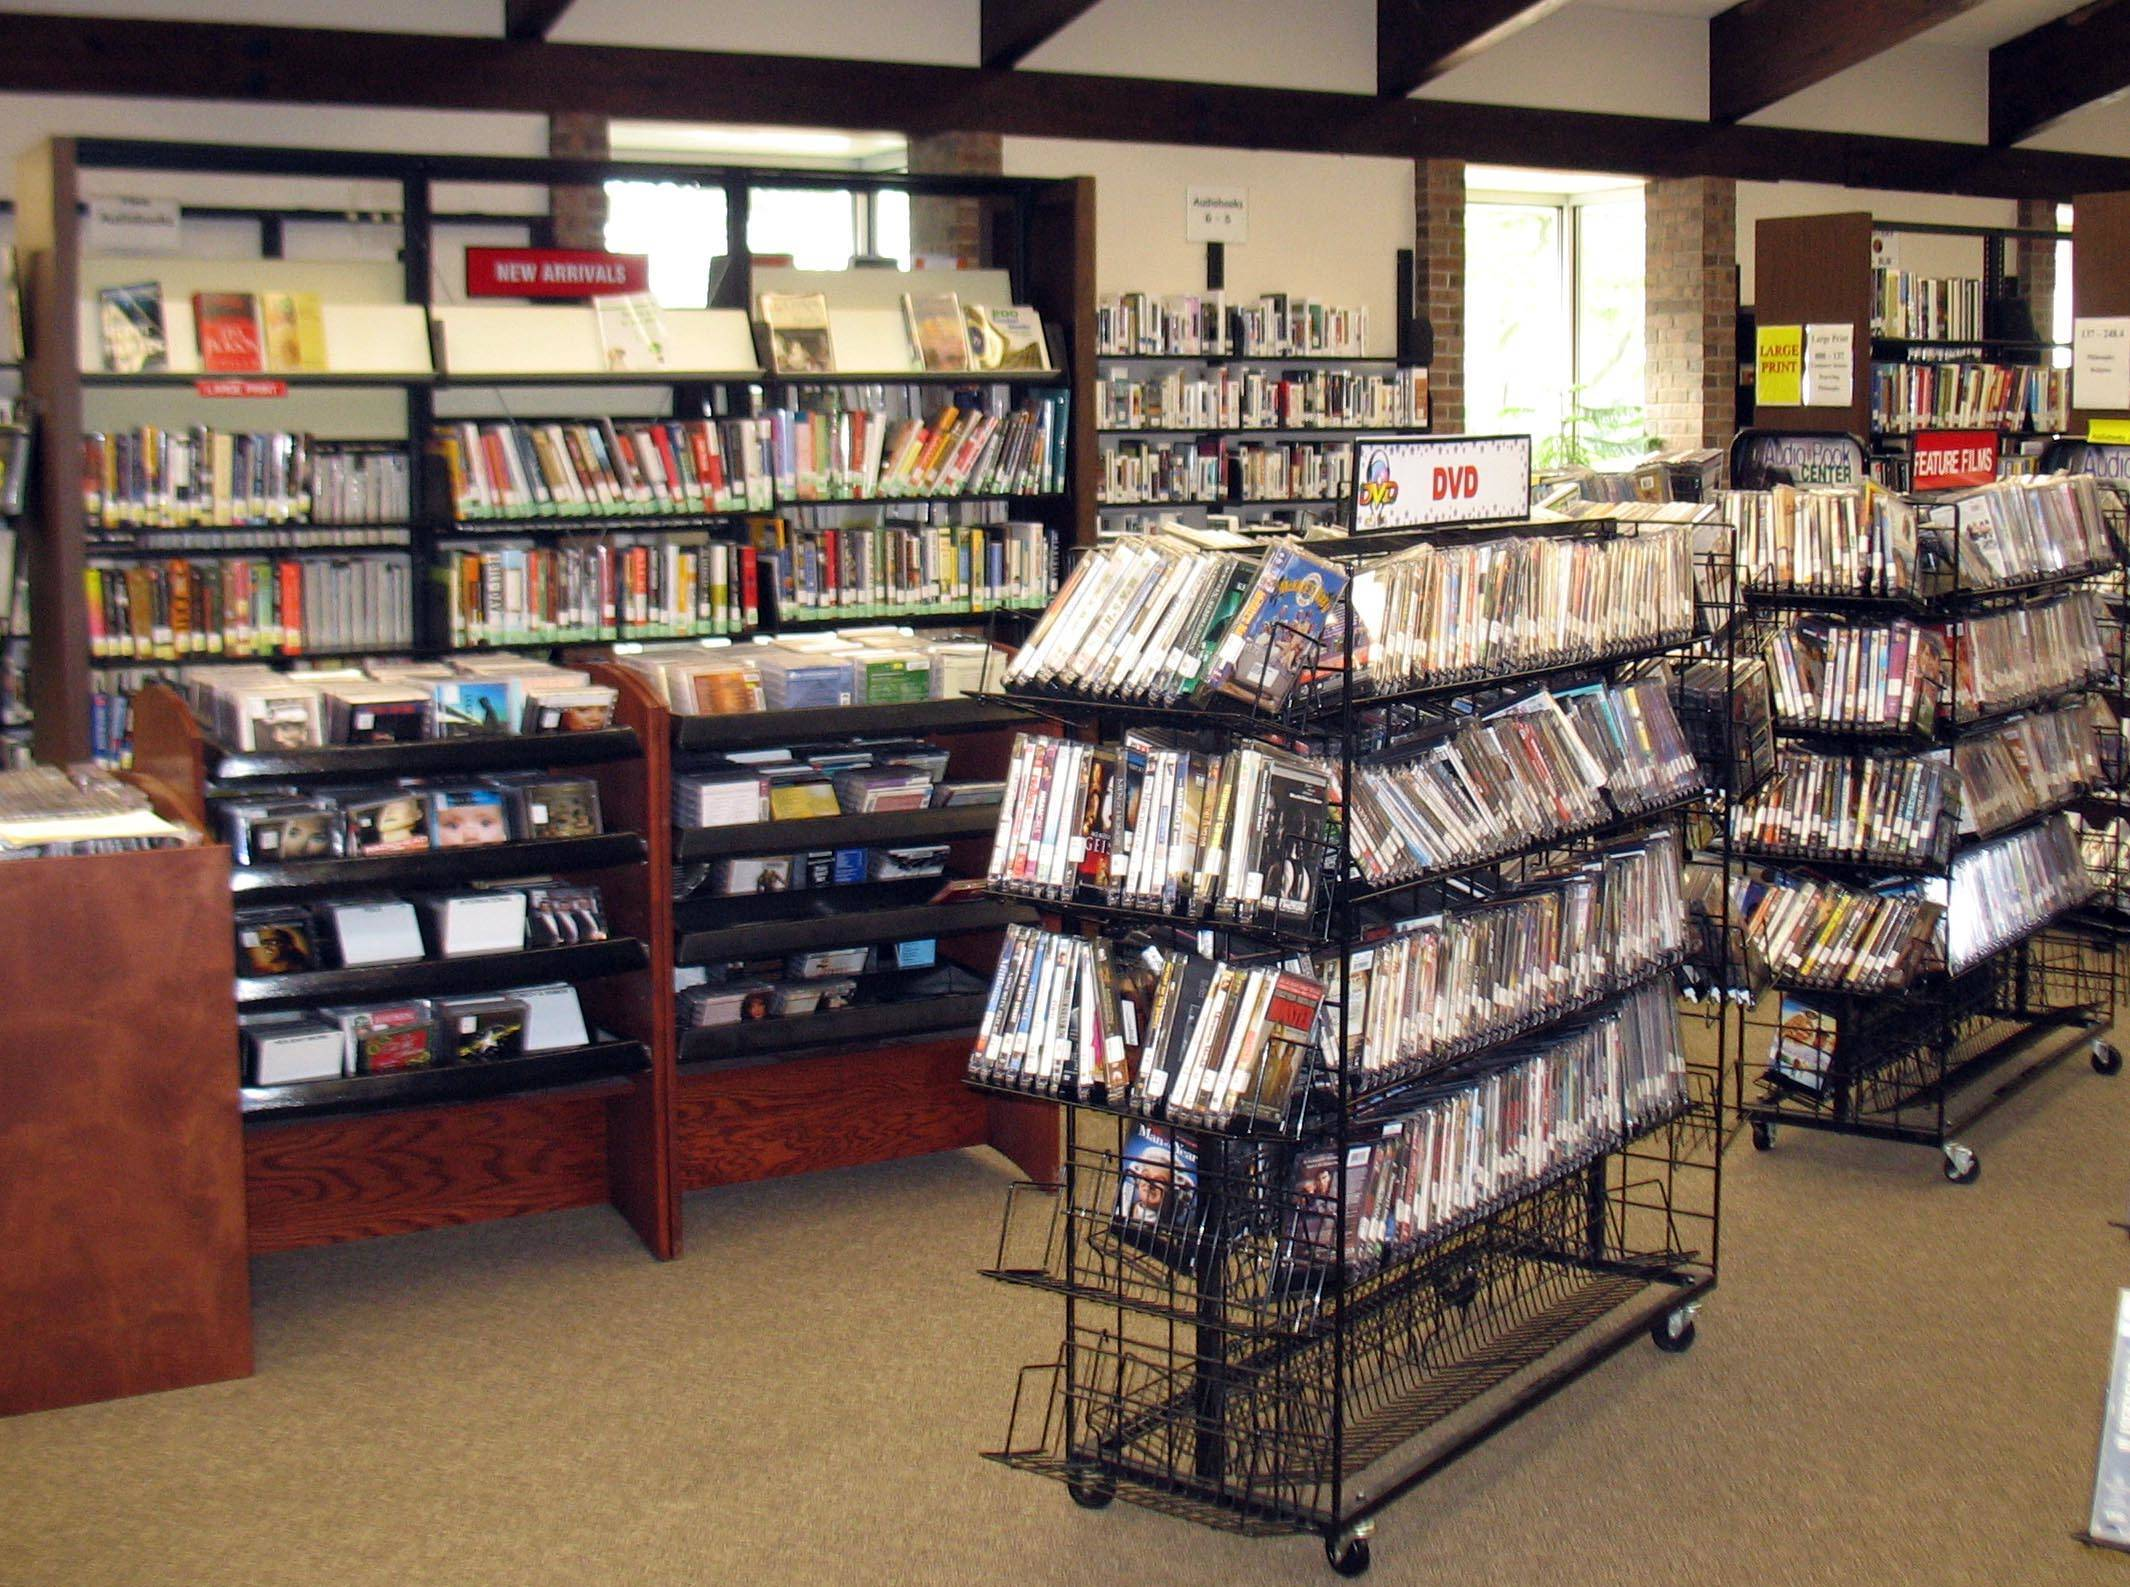 75e13dc141392ebee72a_Scotch_Plains_Library_-_books_on_shelves.jpg